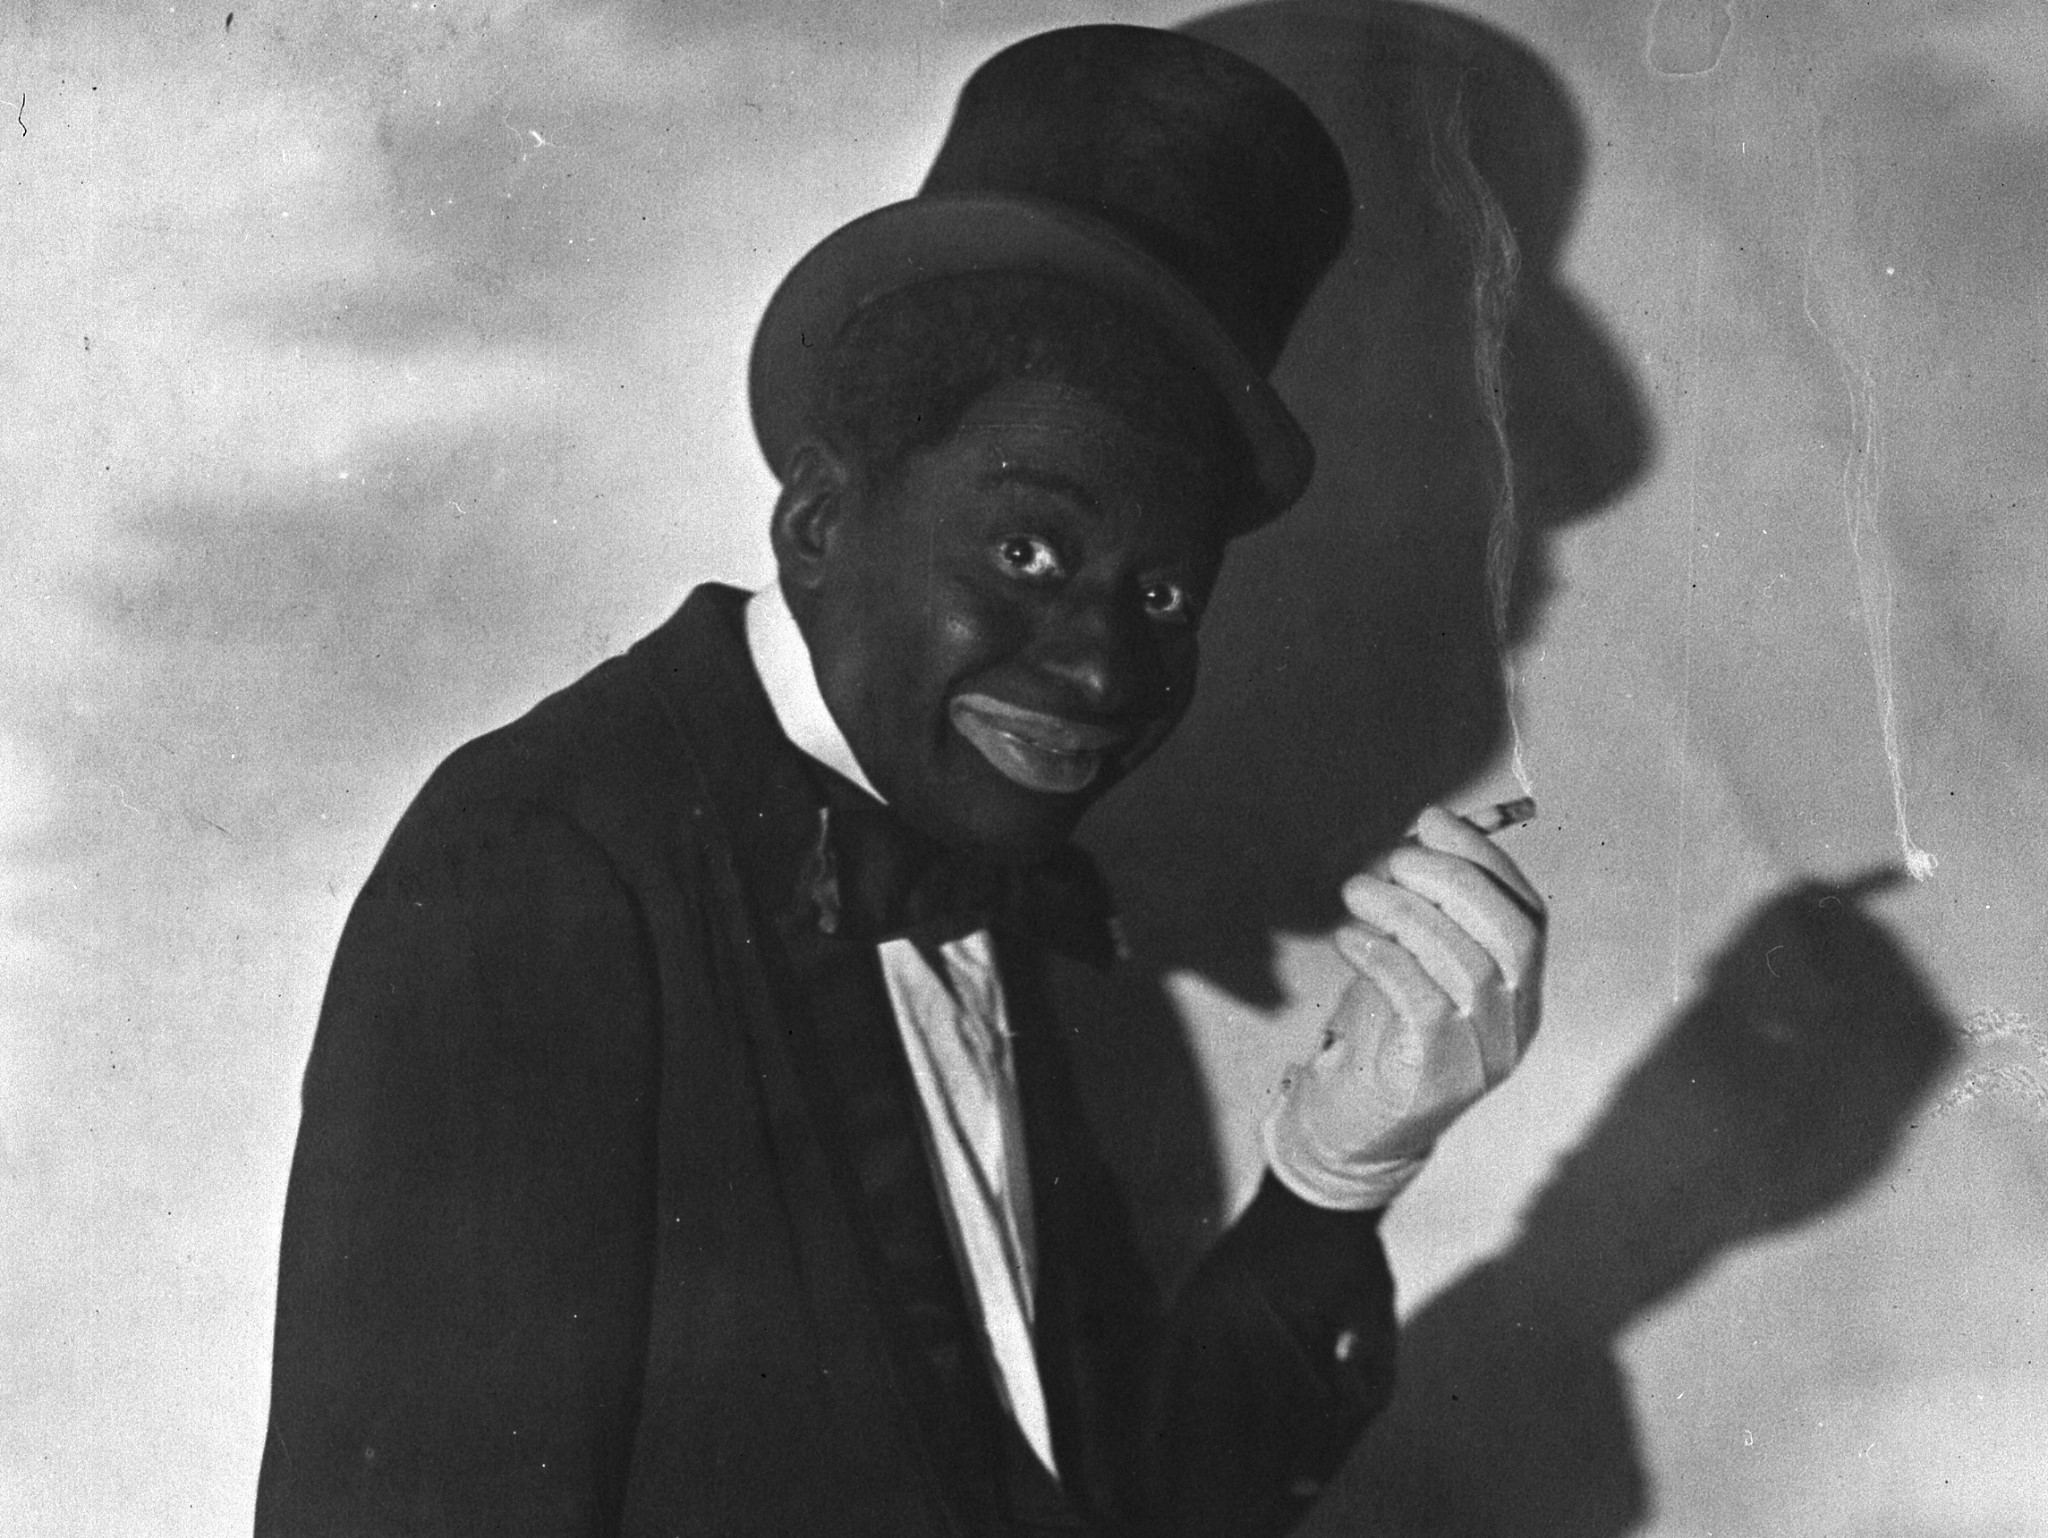 Photo portrait of Vaudeville star Bert Williams in blackface with cigarette; cropped from original. Promotional photo by Samuel Lumiere studio, New York City, via Library of Congress LC-USZ62-64924